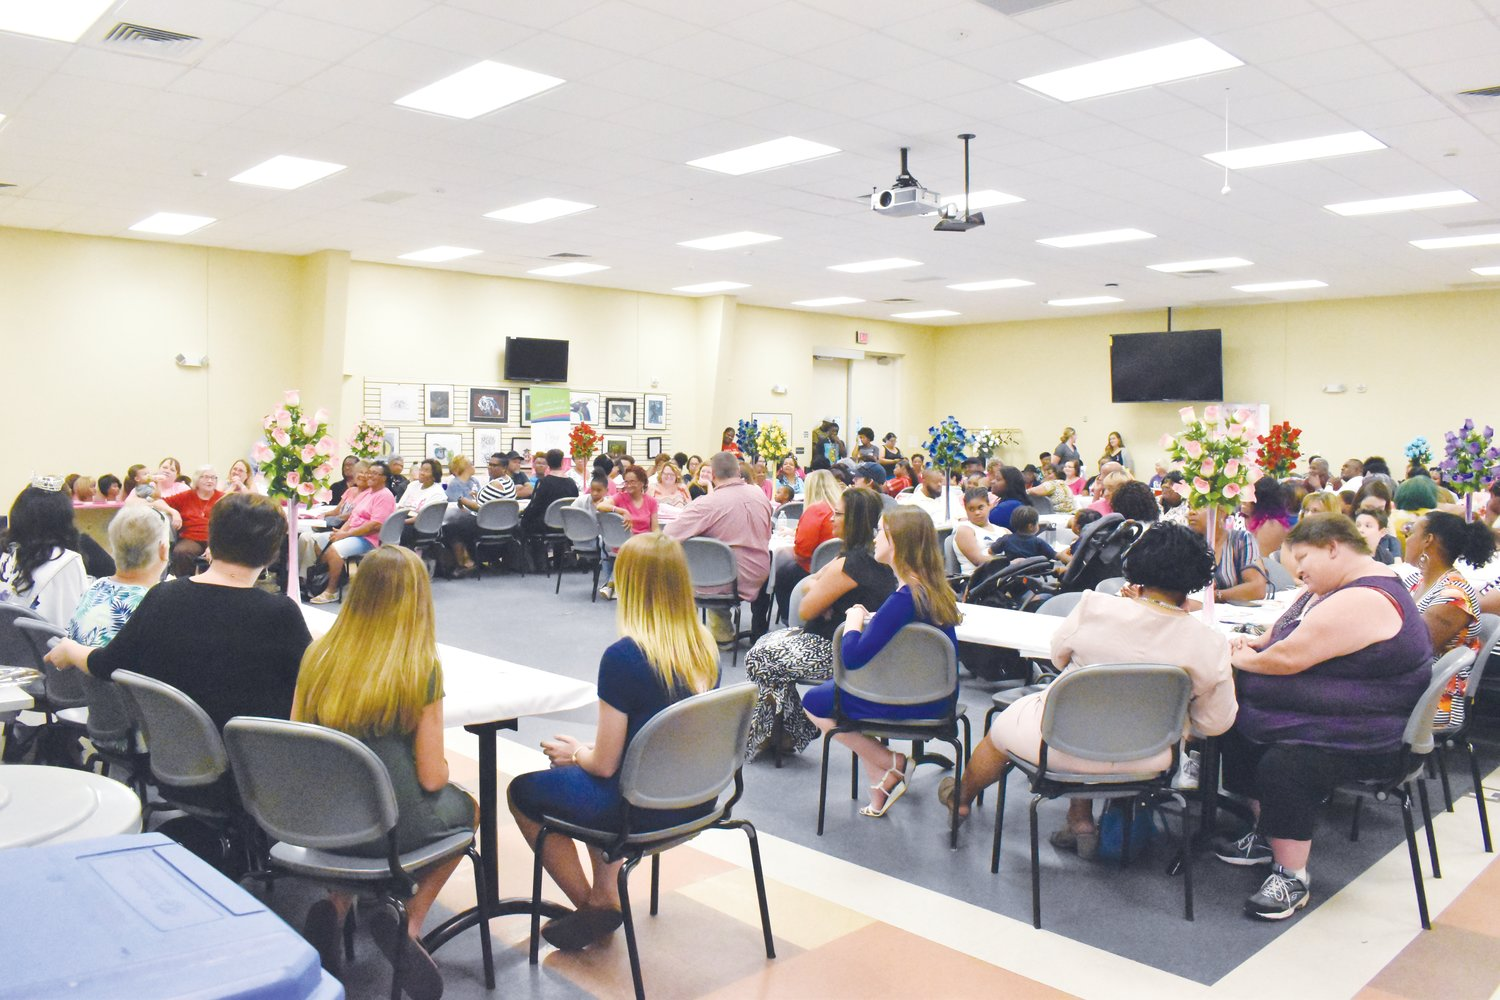 A large crowd filled a meeting room on the PCC campus last Thursday to take part in a cancer awareness event that was emceed by the reigning Miss North Carolina Alexandra Badgett.